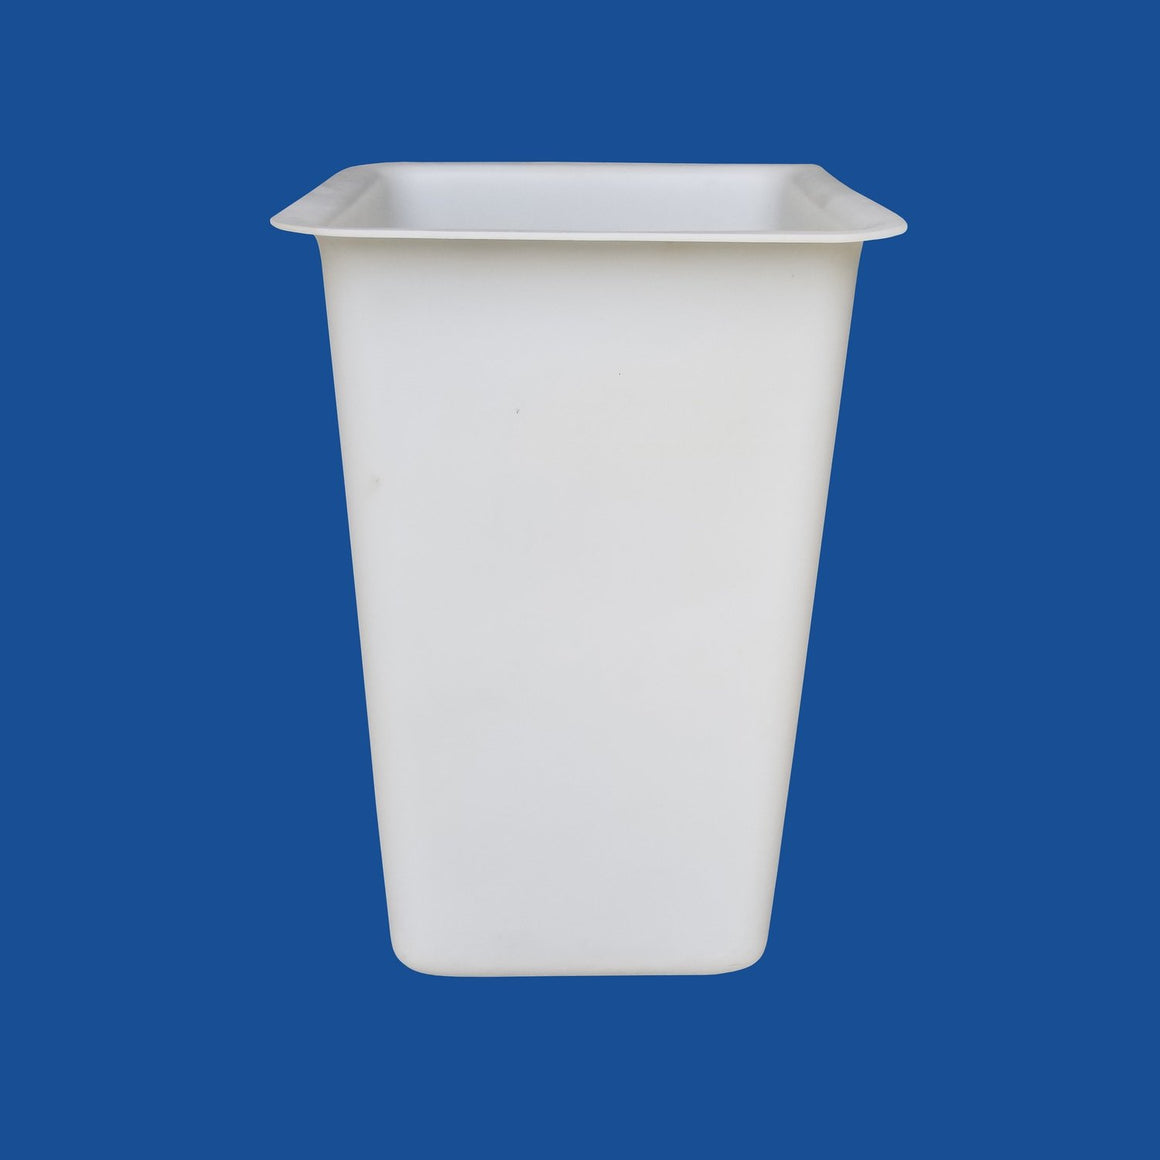 "Bucket Liner - 24"" x 24"" x 39"" - Single Man - (Nonskid) - Plastic Composites Co"